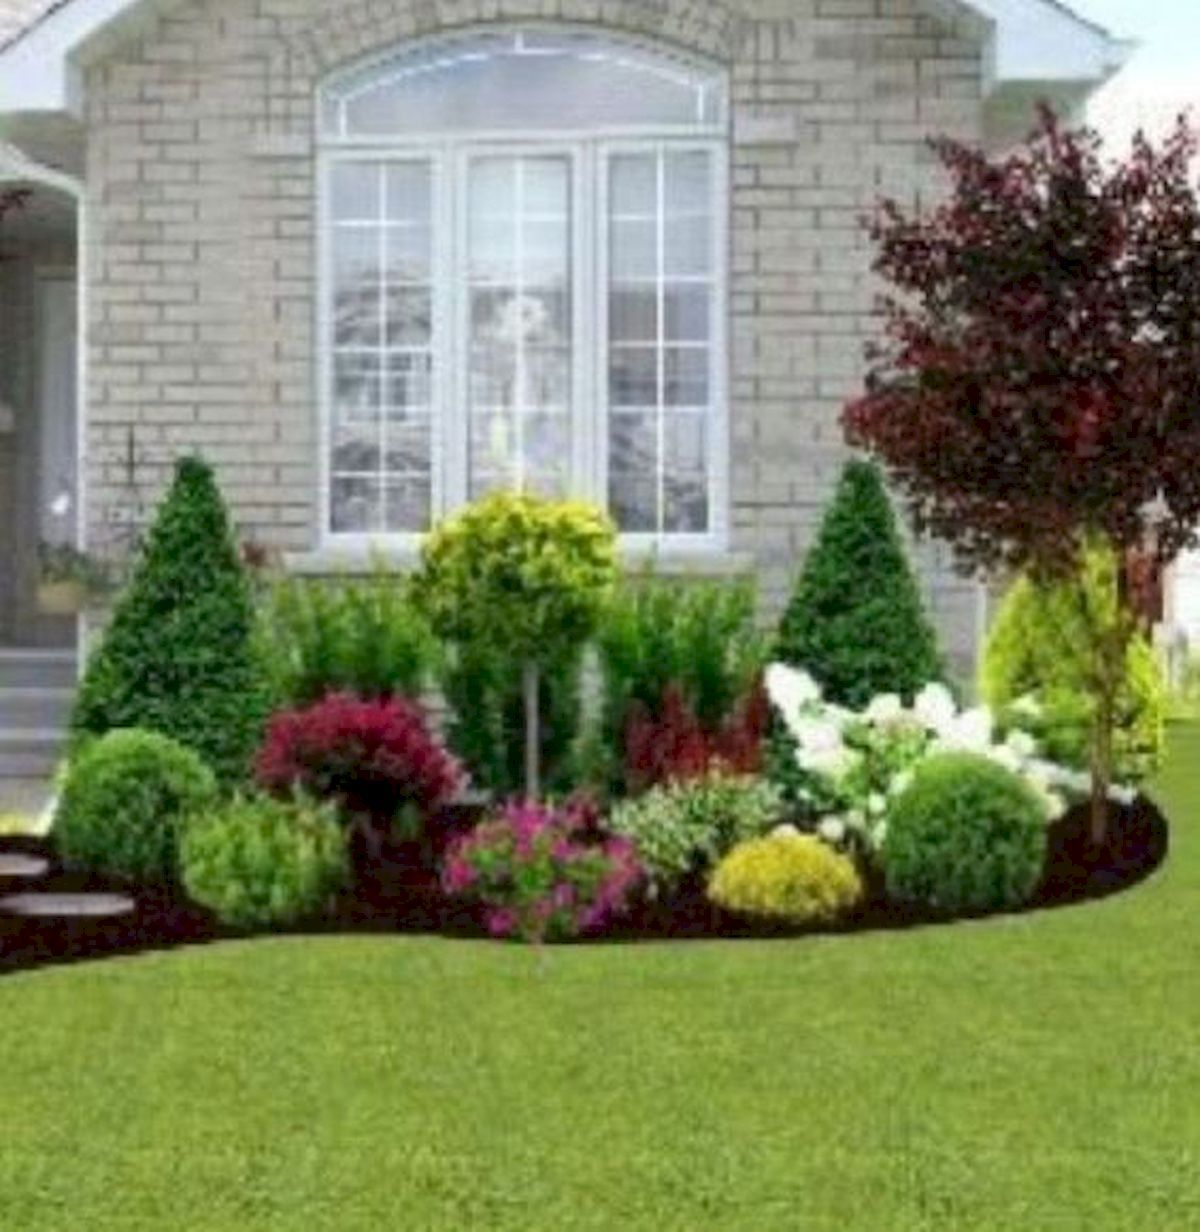 35 Awesome Front Yard Design Ideas Front House Landscaping Front Yard Garden Design Front Yard Landscaping Design